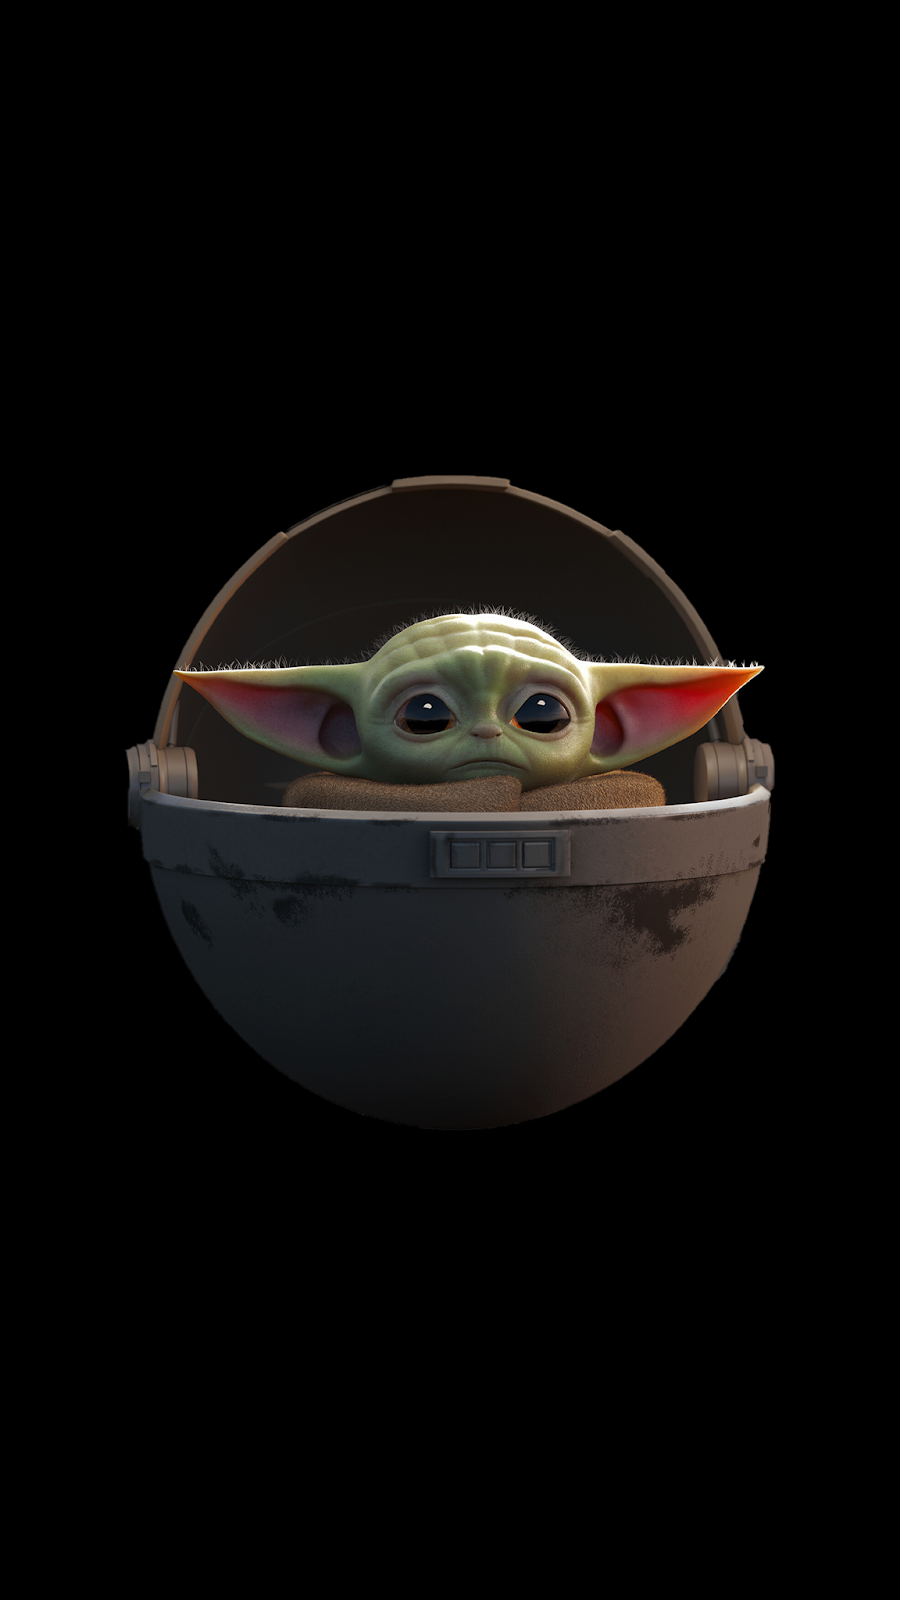 baby yoda wallpaper iphone android